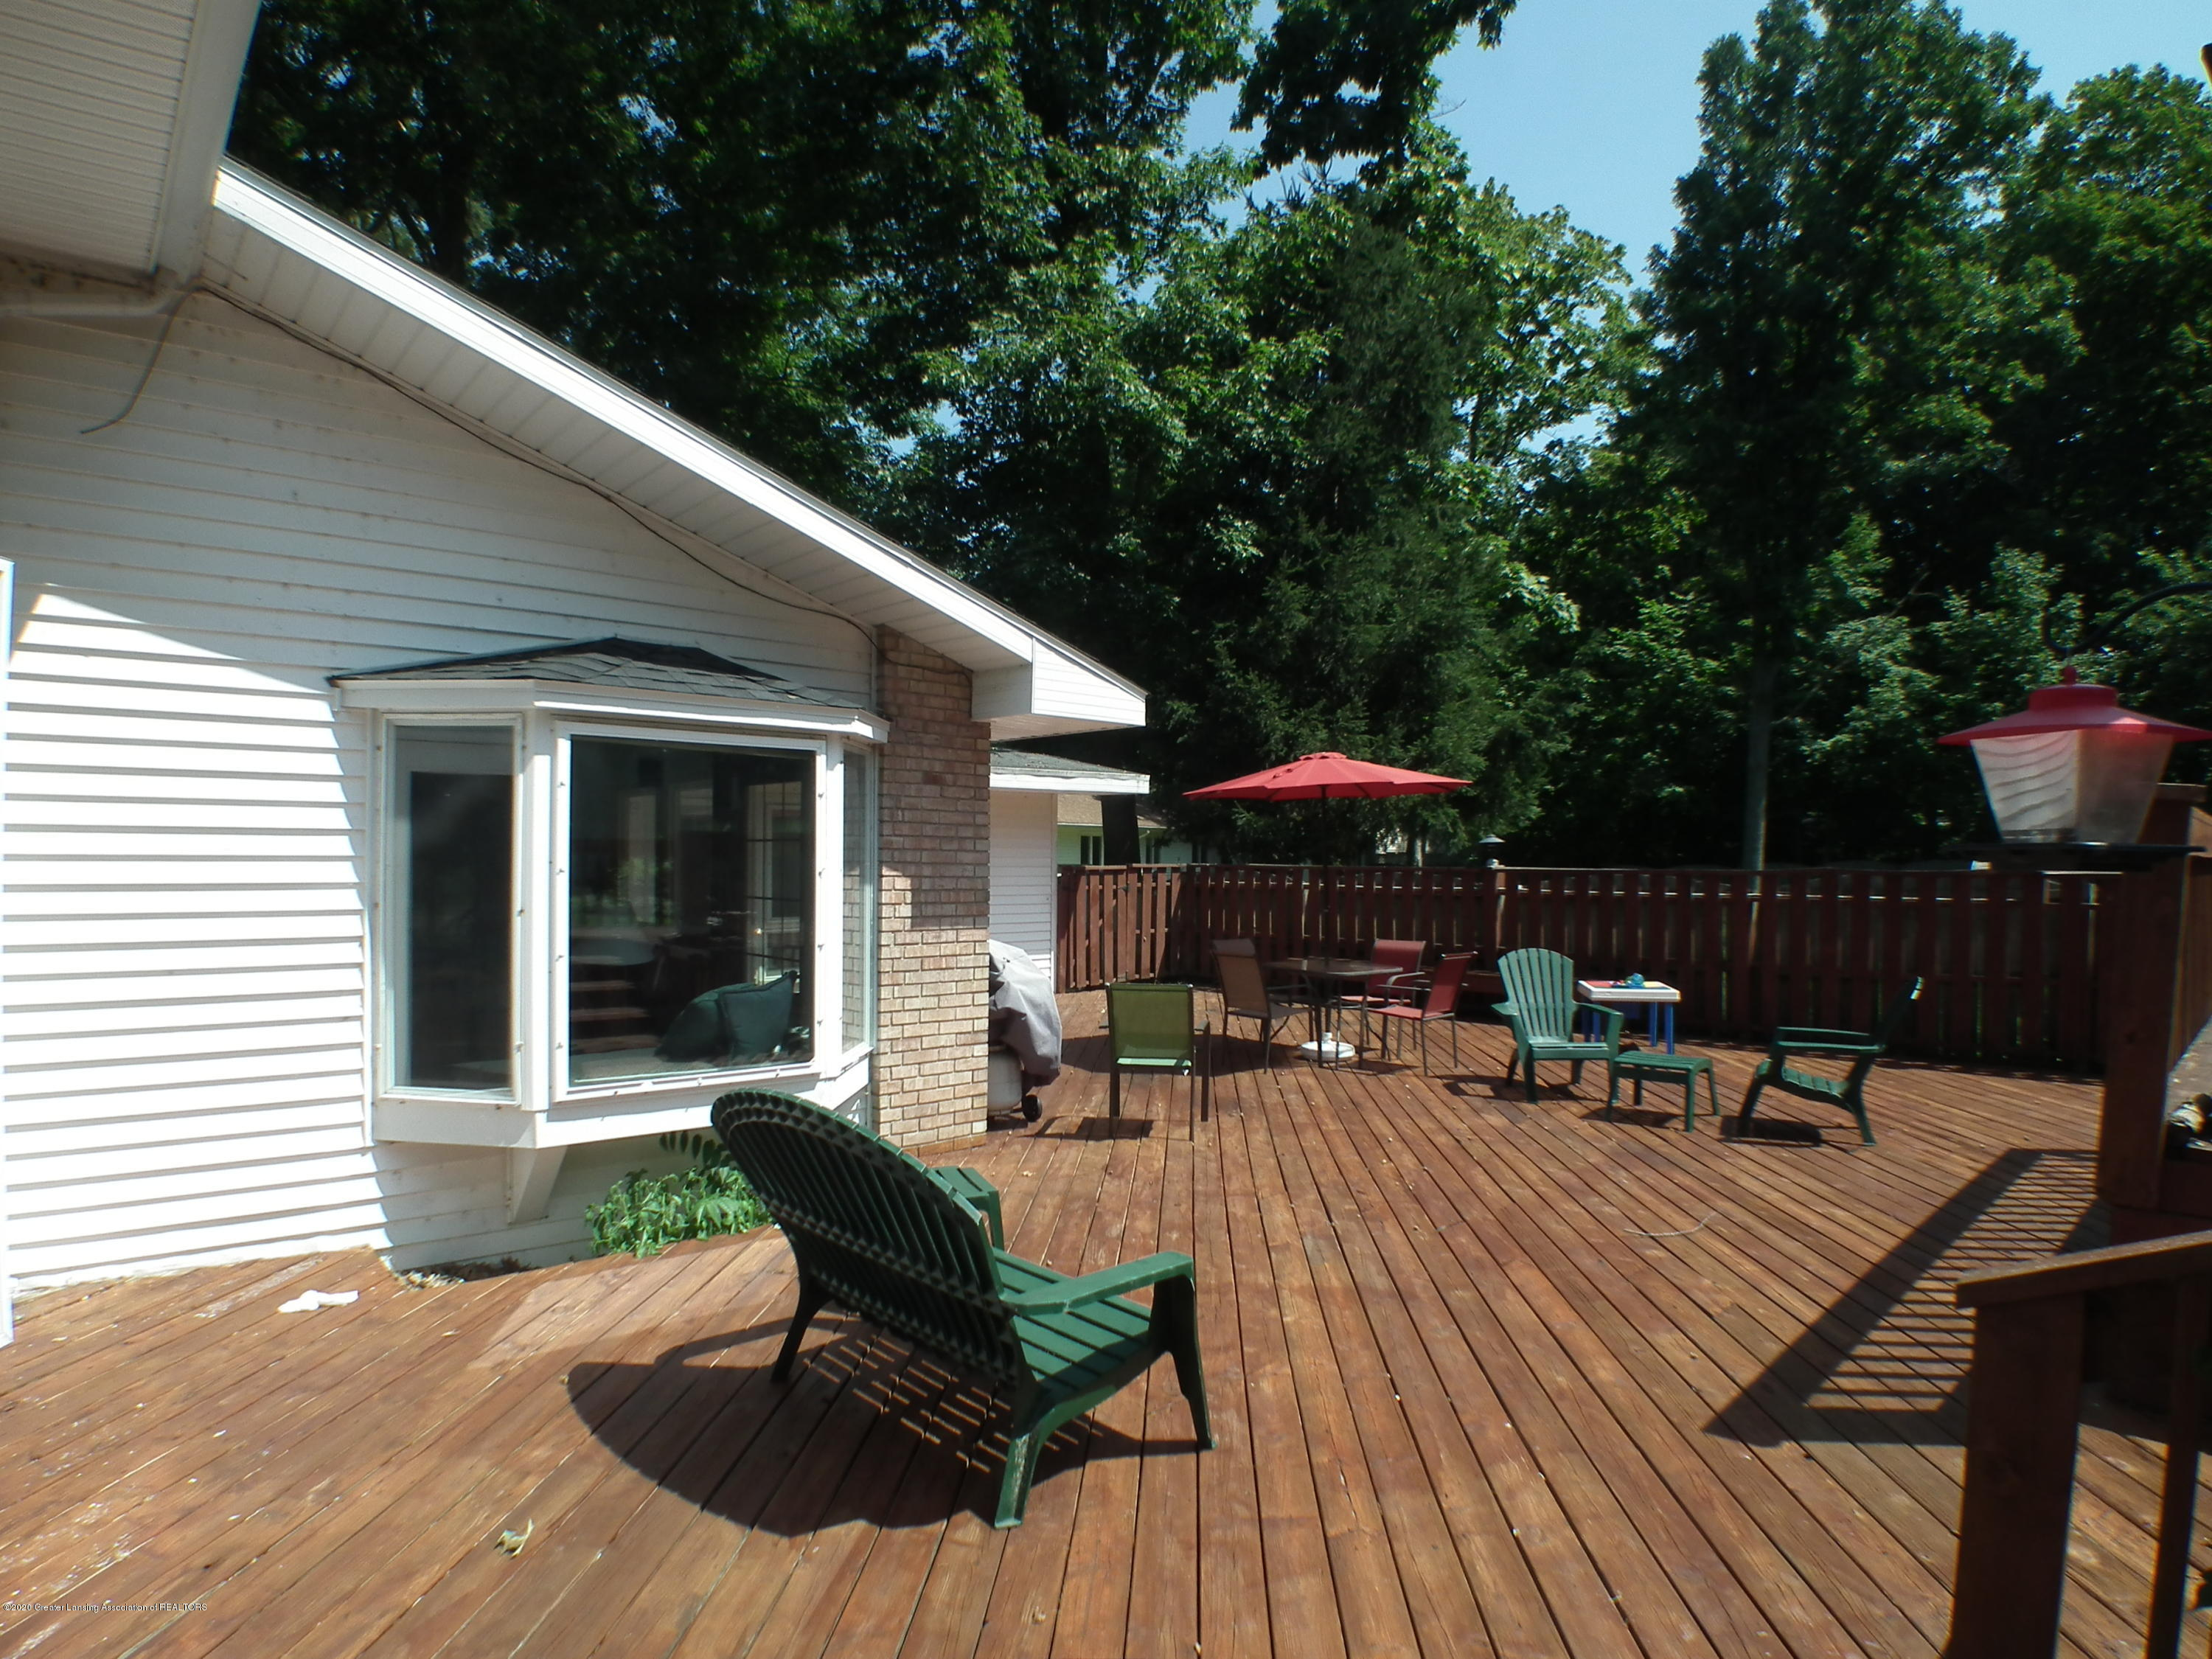 5600 Grand River Dr - Deck Area c - 41